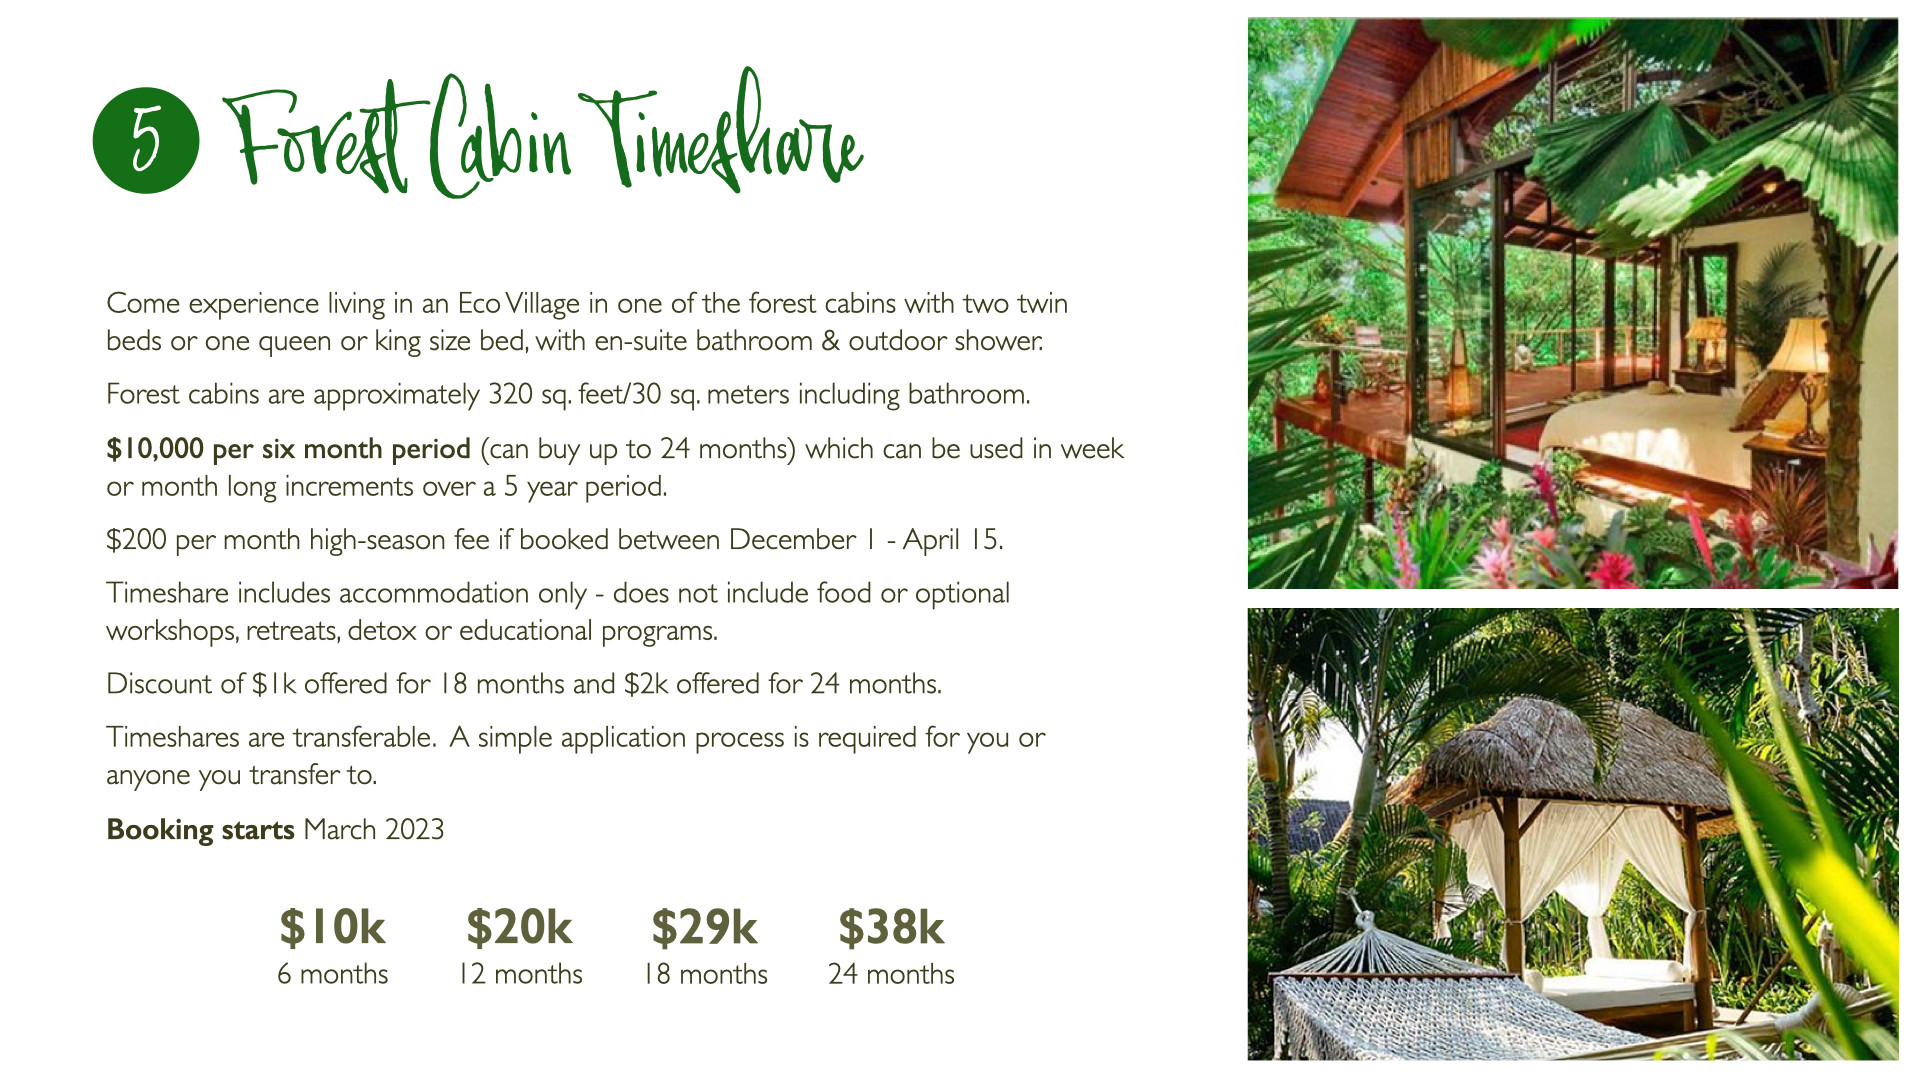 Forest View Timeshare